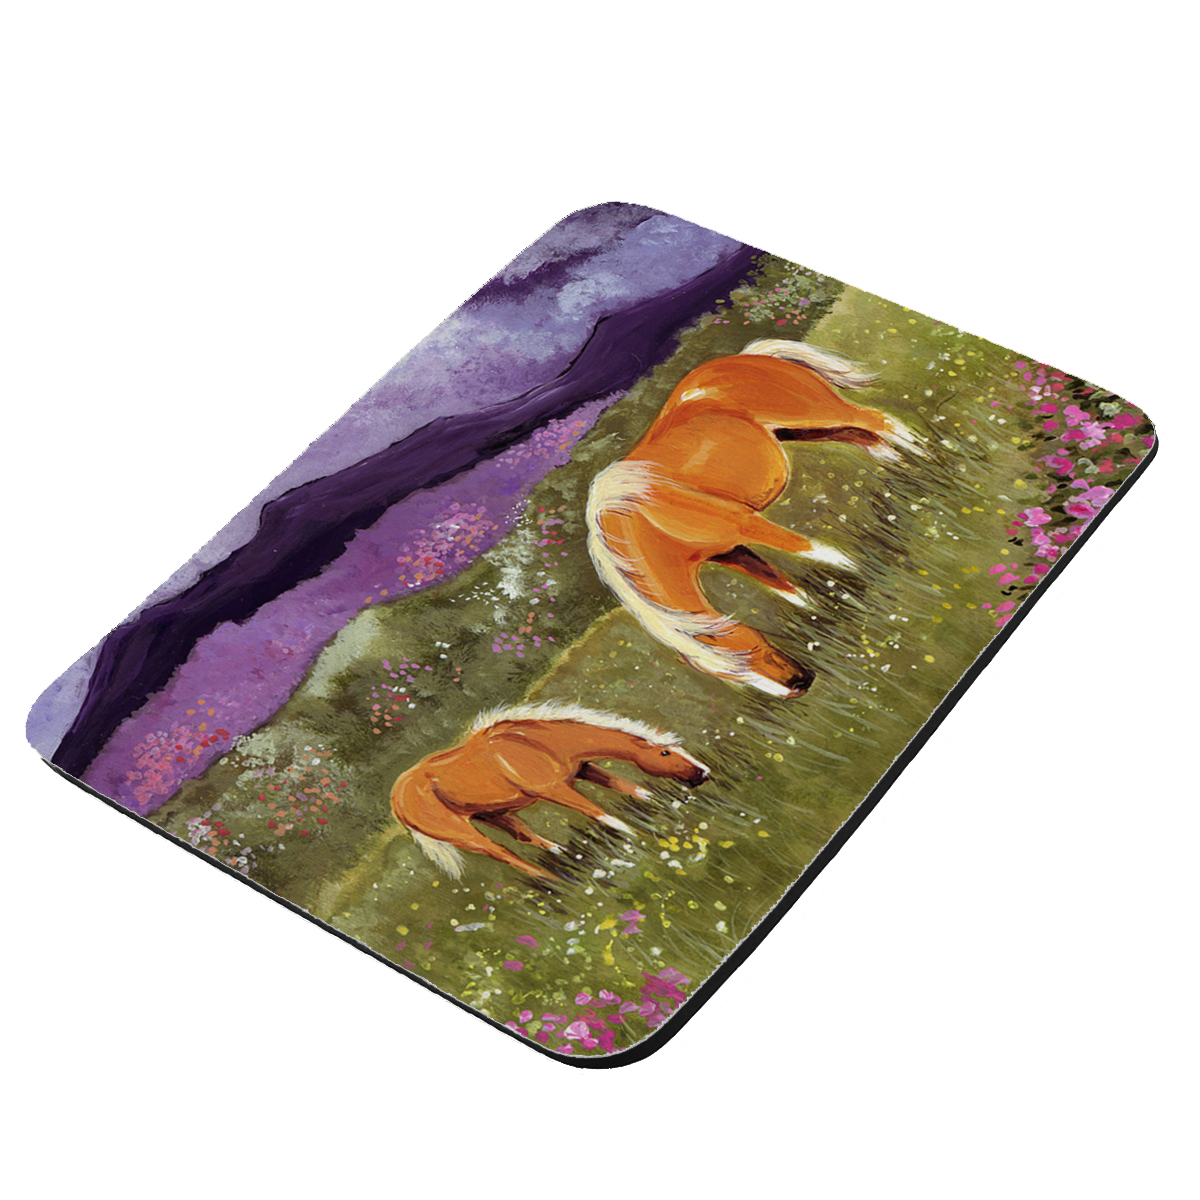 Belgian Mare and Foal High Valley Spring Horse Art by Denise Every - KuzmarK Mousepad / Hot Pad / Trivet